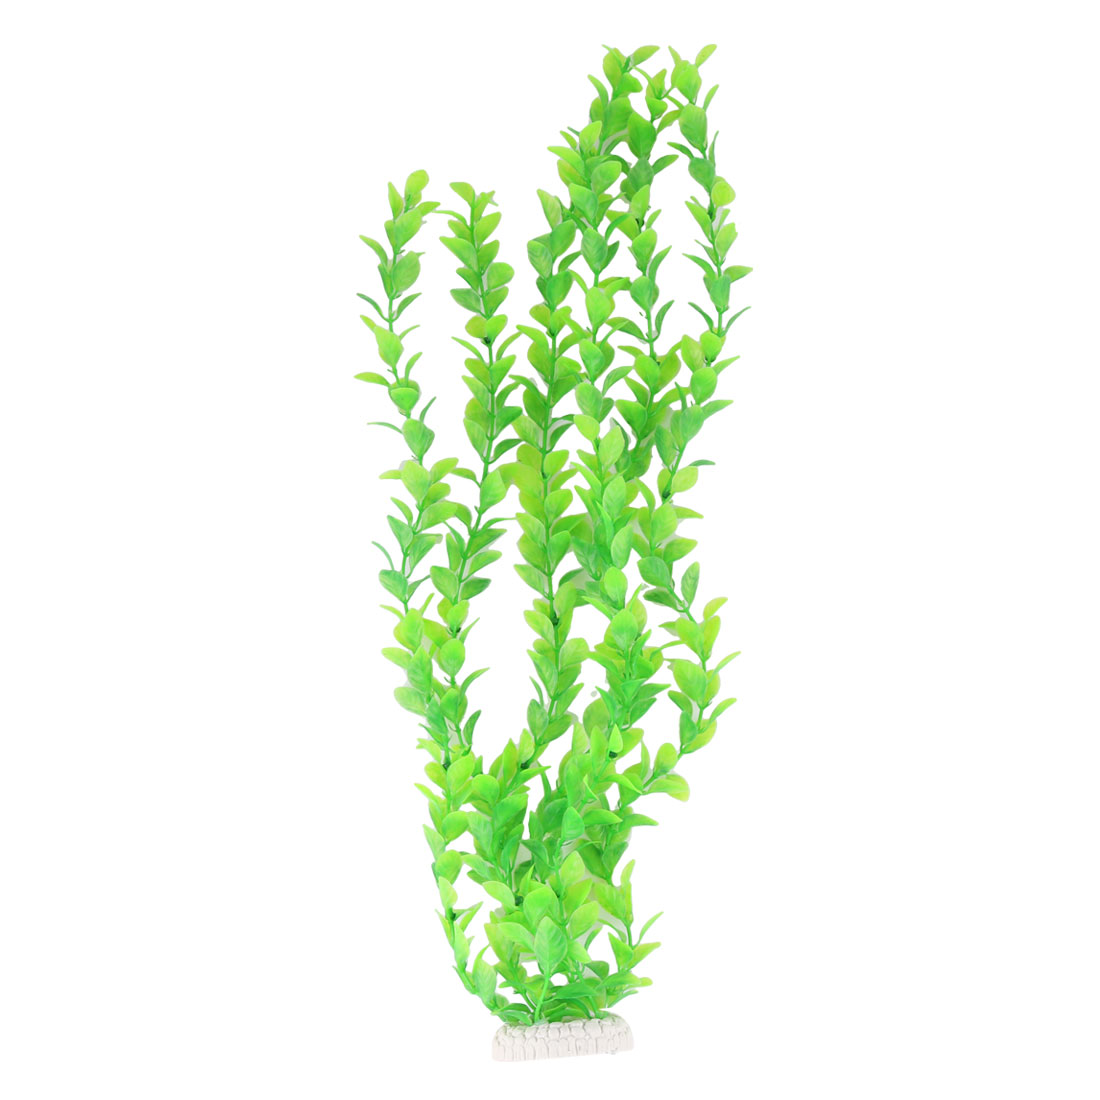 Aquarium Fish Bowl Plastic Artificial Plant Grass Ornament Green 52cm Height